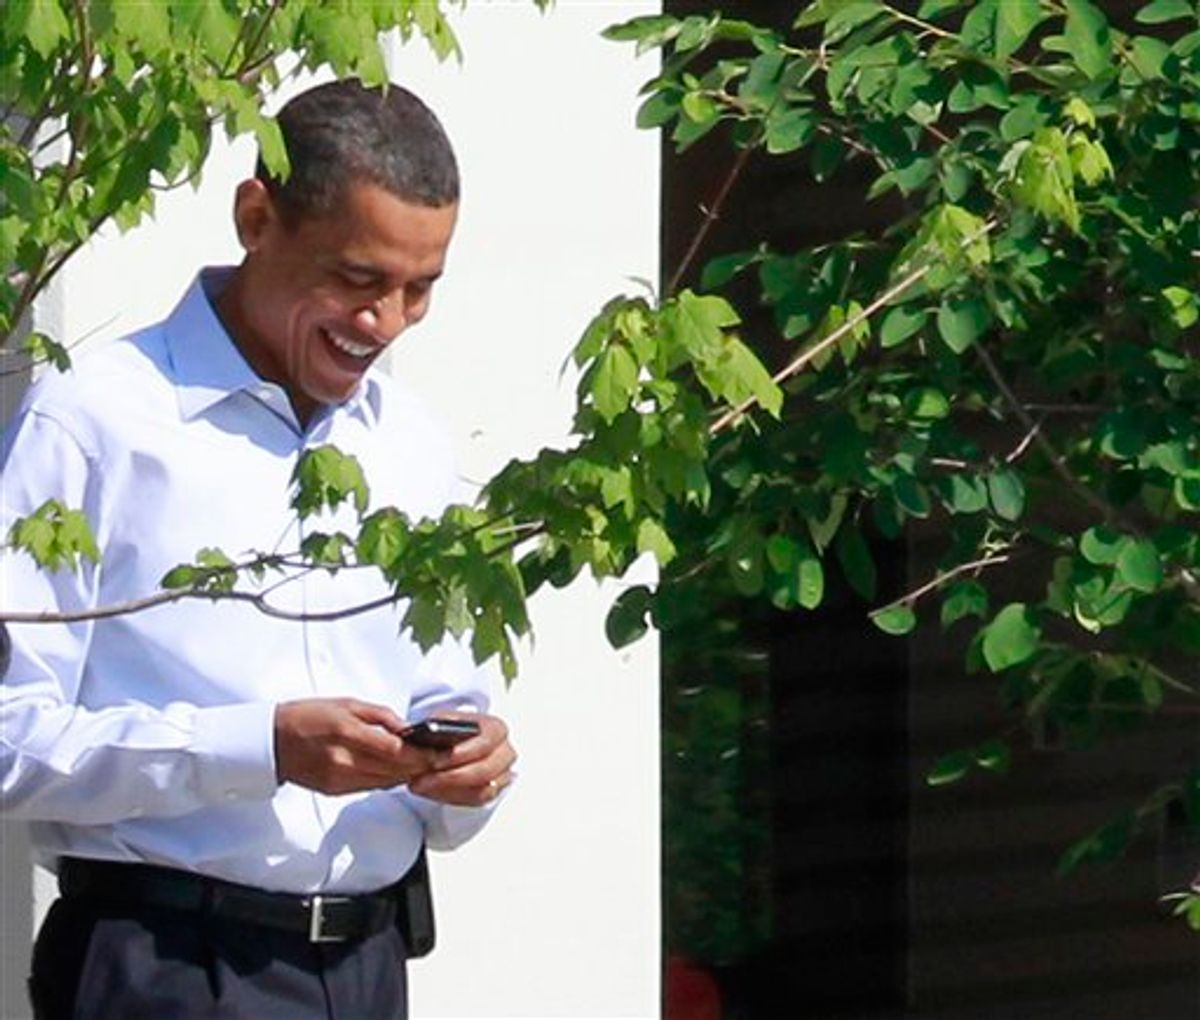 """FILE - In this June 3, 2010 file photo, President Barack Obama uses his BlackBerry e-mail device as he walks at Sidwell Friends school in Bethesda, Md. Call him the Digital Candidate: President Barack Obama has asked supporters to use Facebook to declare """"I'm in"""" for his re-election campaign and has begun using Twitter to communicate with his nearly 9 million followers. If Obama broke new ground using email, text messages and the Web to reach voters in 2008, Obama version 2.0 aims to harness the expansive roles that the Internet and social media are playing now in voters' lives. (AP Photo/Charles Dharapak, File) (AP)"""